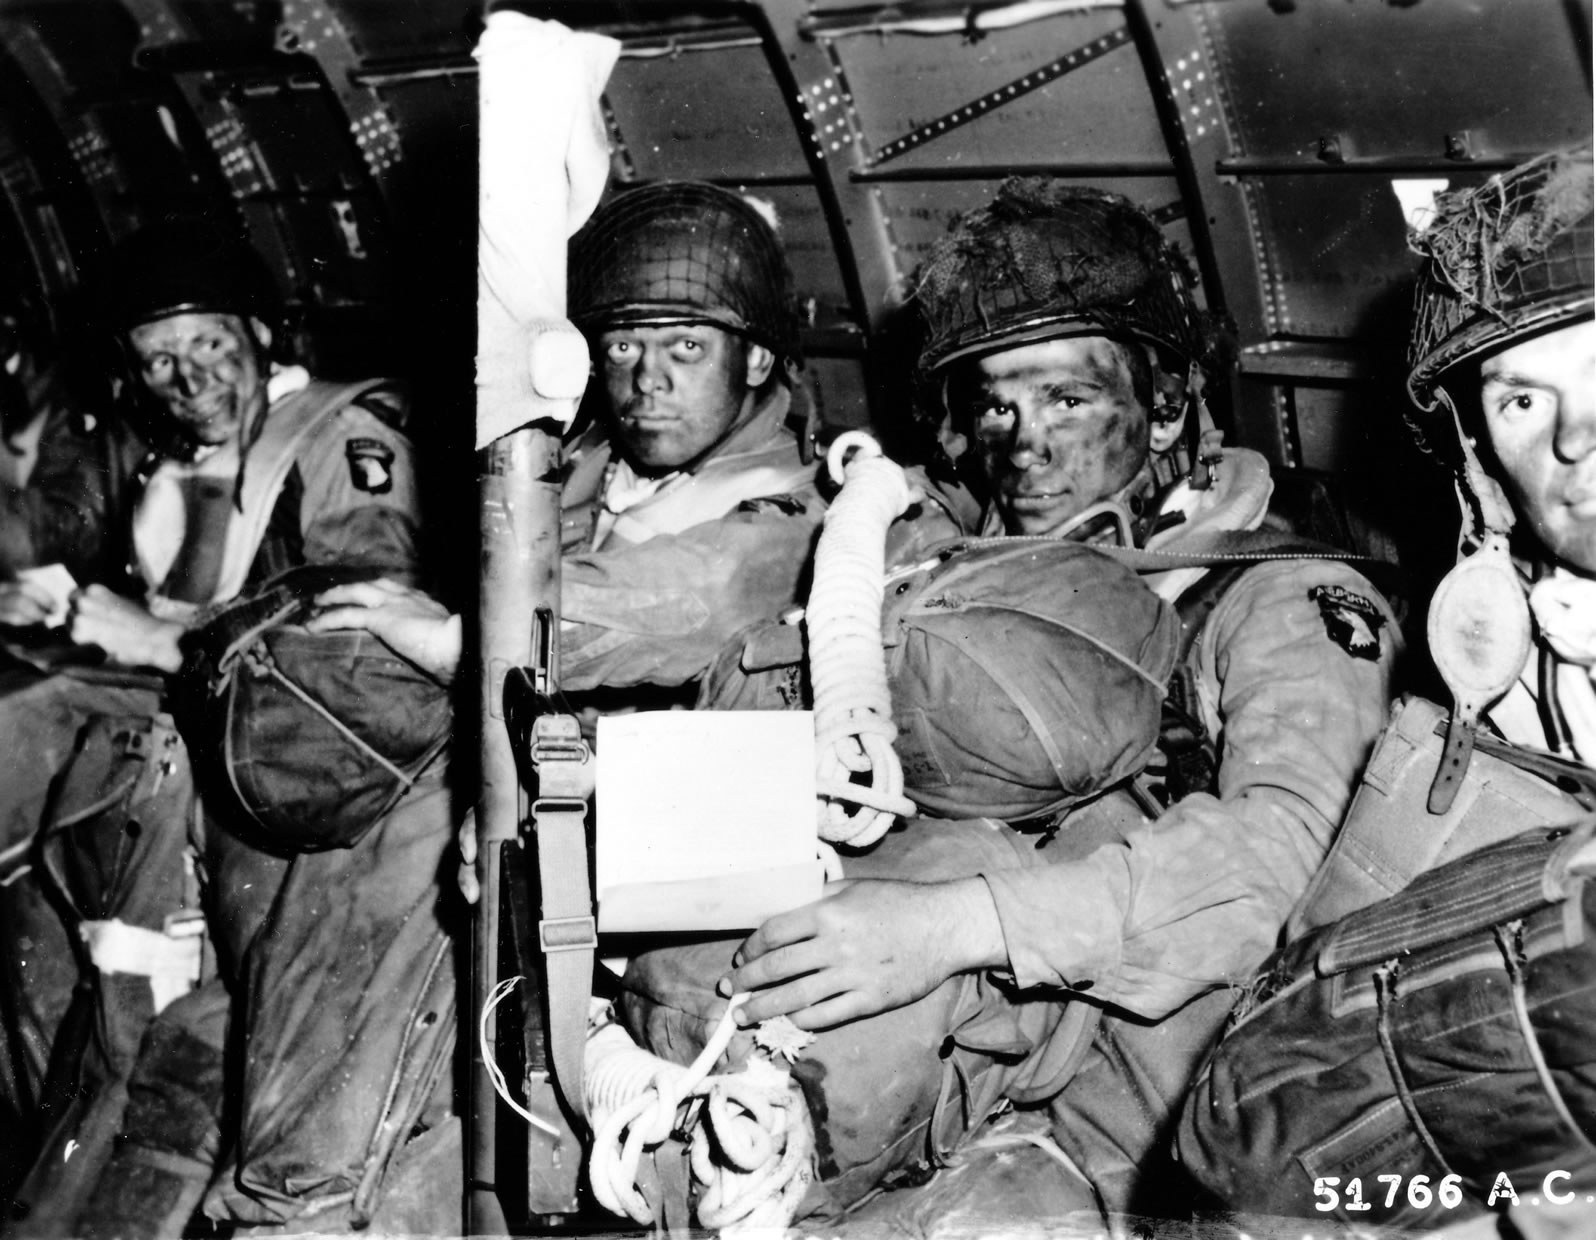 101st Airborne Division - Screaming Eagles